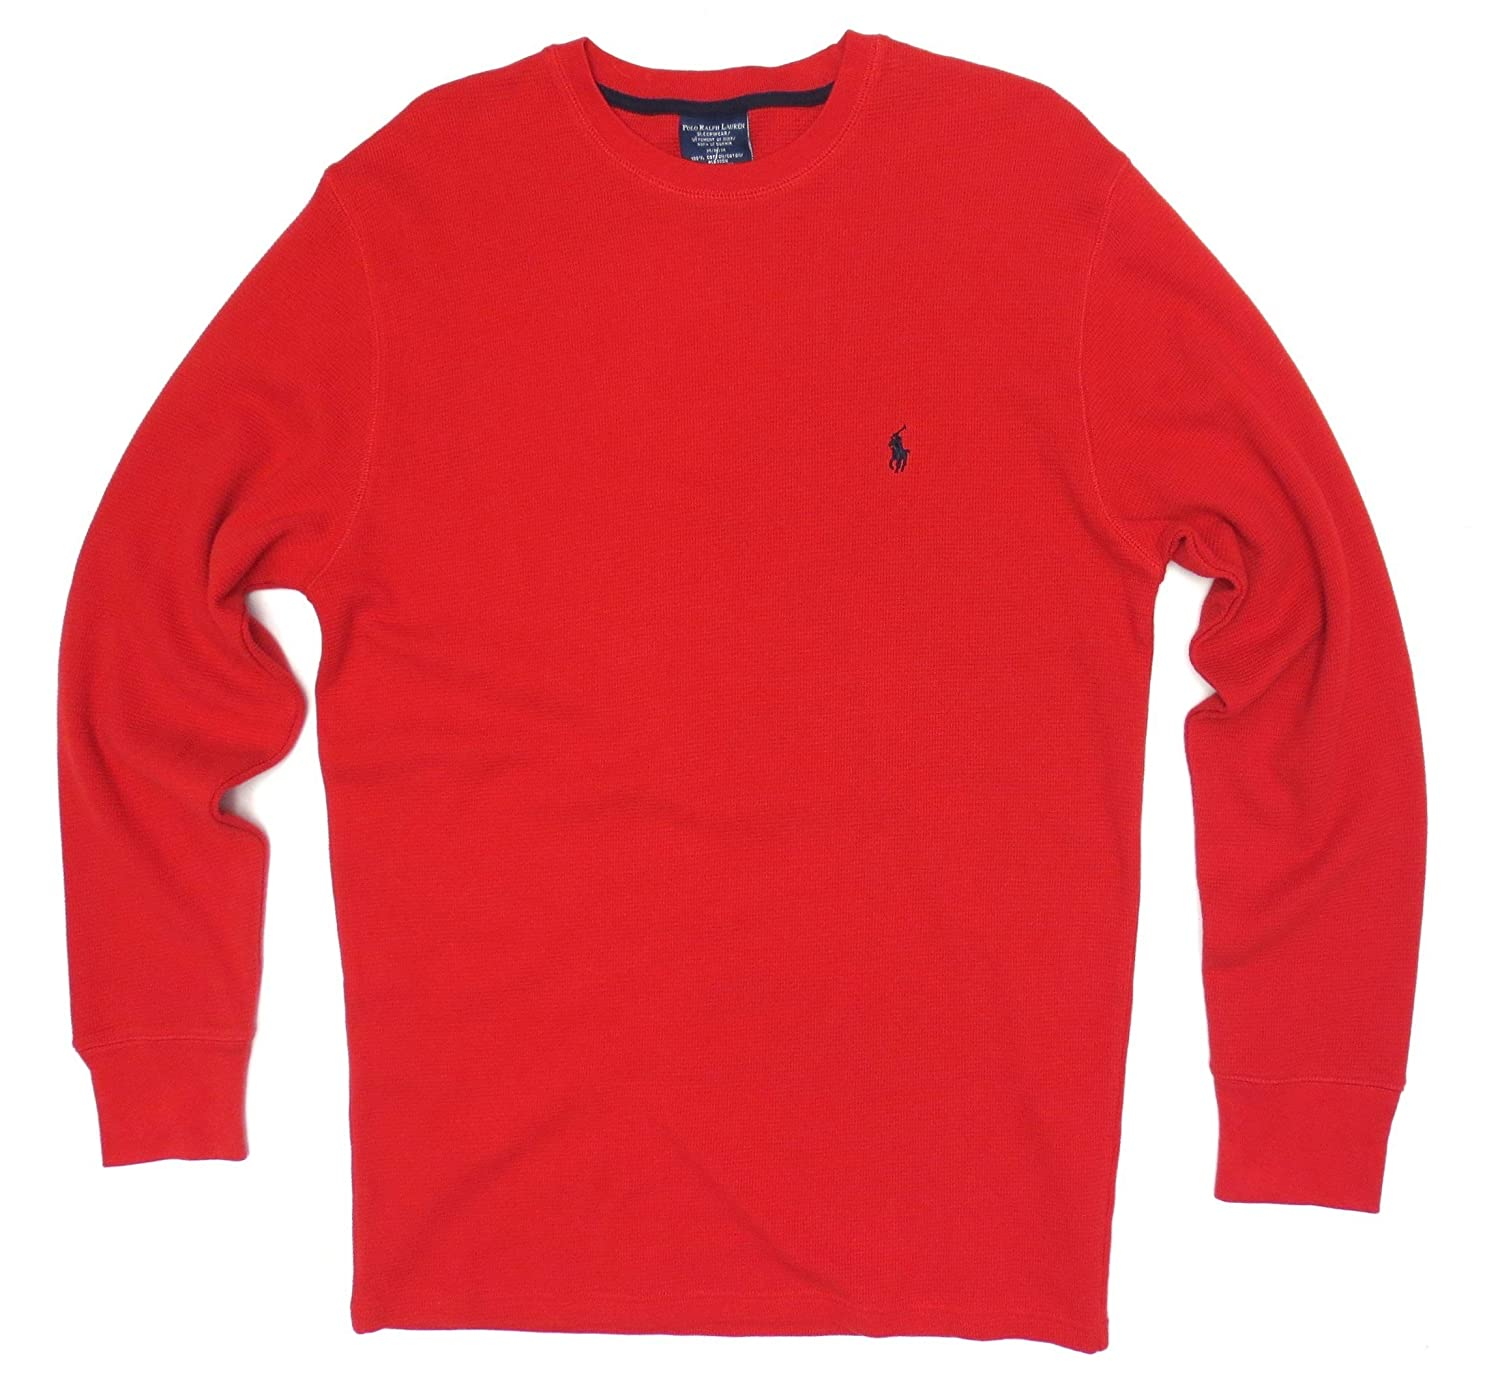 189ecf26 Polo Ralph Lauren Mens Long-sleeved T-shirt / Sleepwear (X-Large, Red/Navy  Blue Pony) | Amazon.com